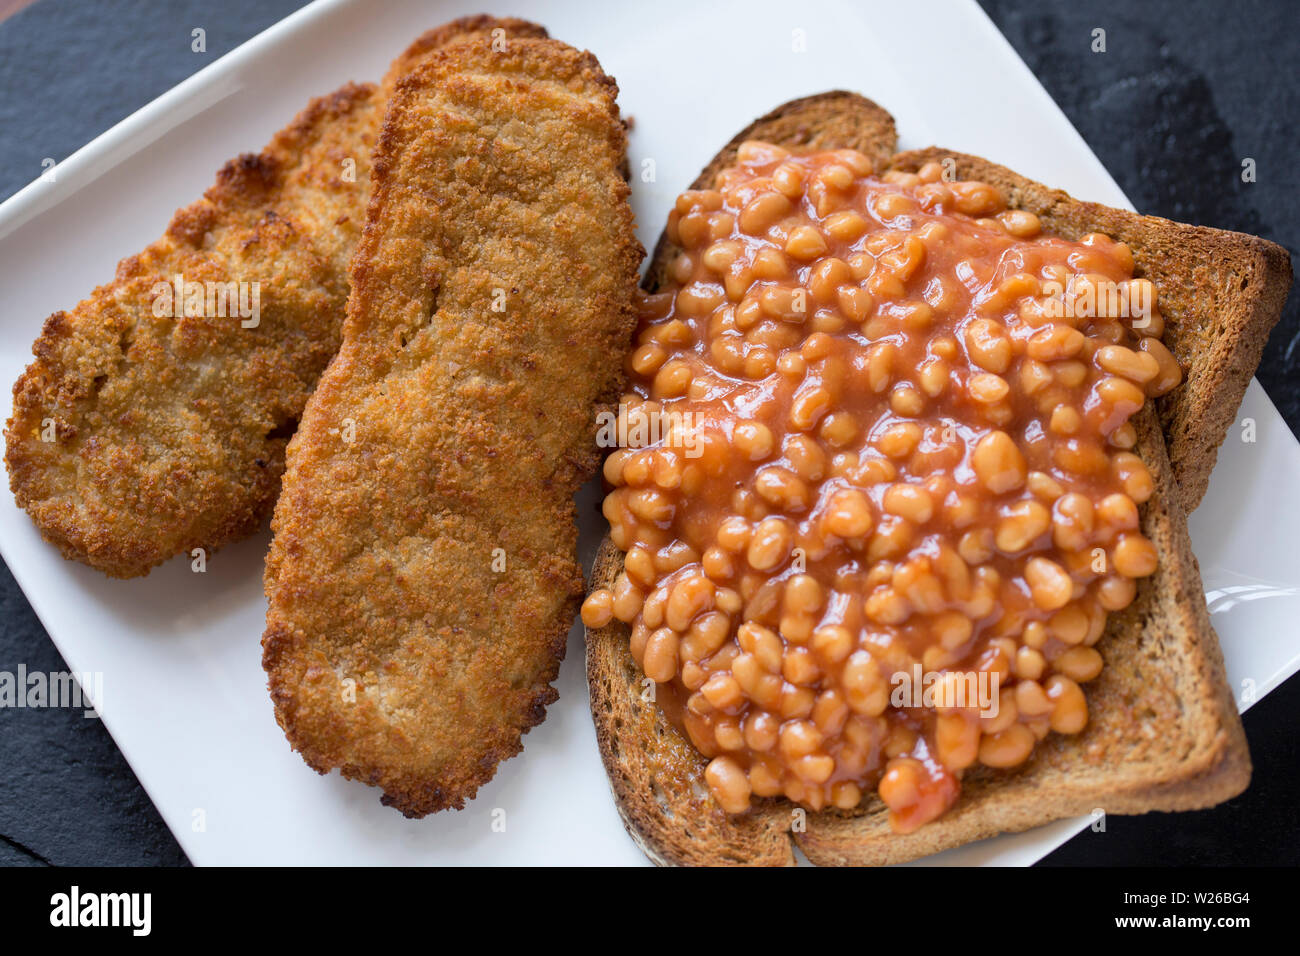 A meal of imported Alaskan breaded pollock fillets, Theragra chalcogramma, bought from a UK supermarket served with baked beans on toast. England UK G - Stock Image